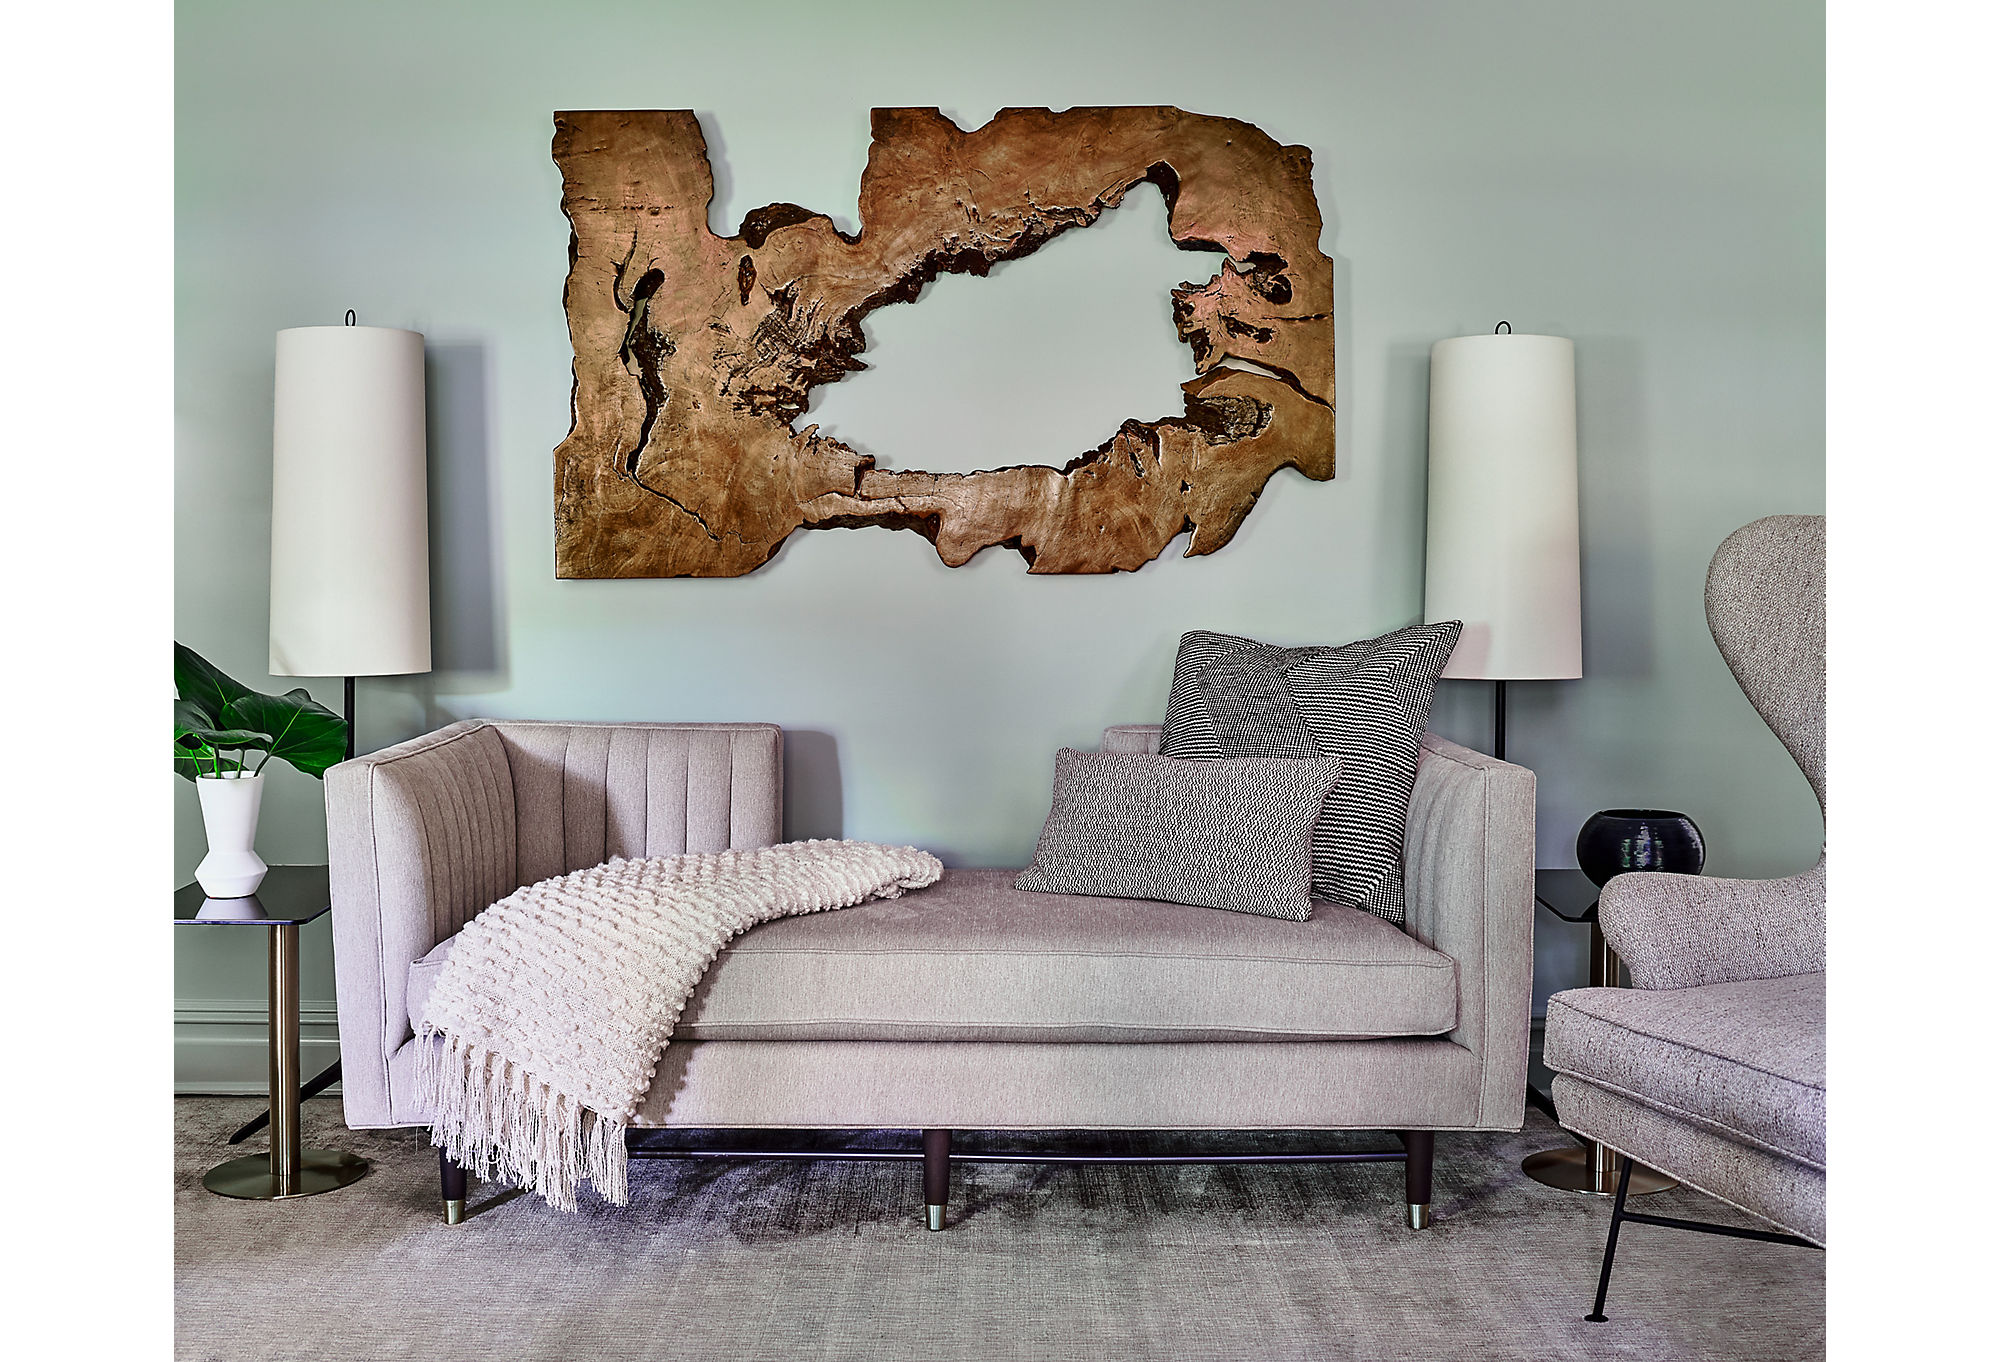 The formal living area uses organic wood art to balance the modern aesthetic of thegray channel-back sofa.